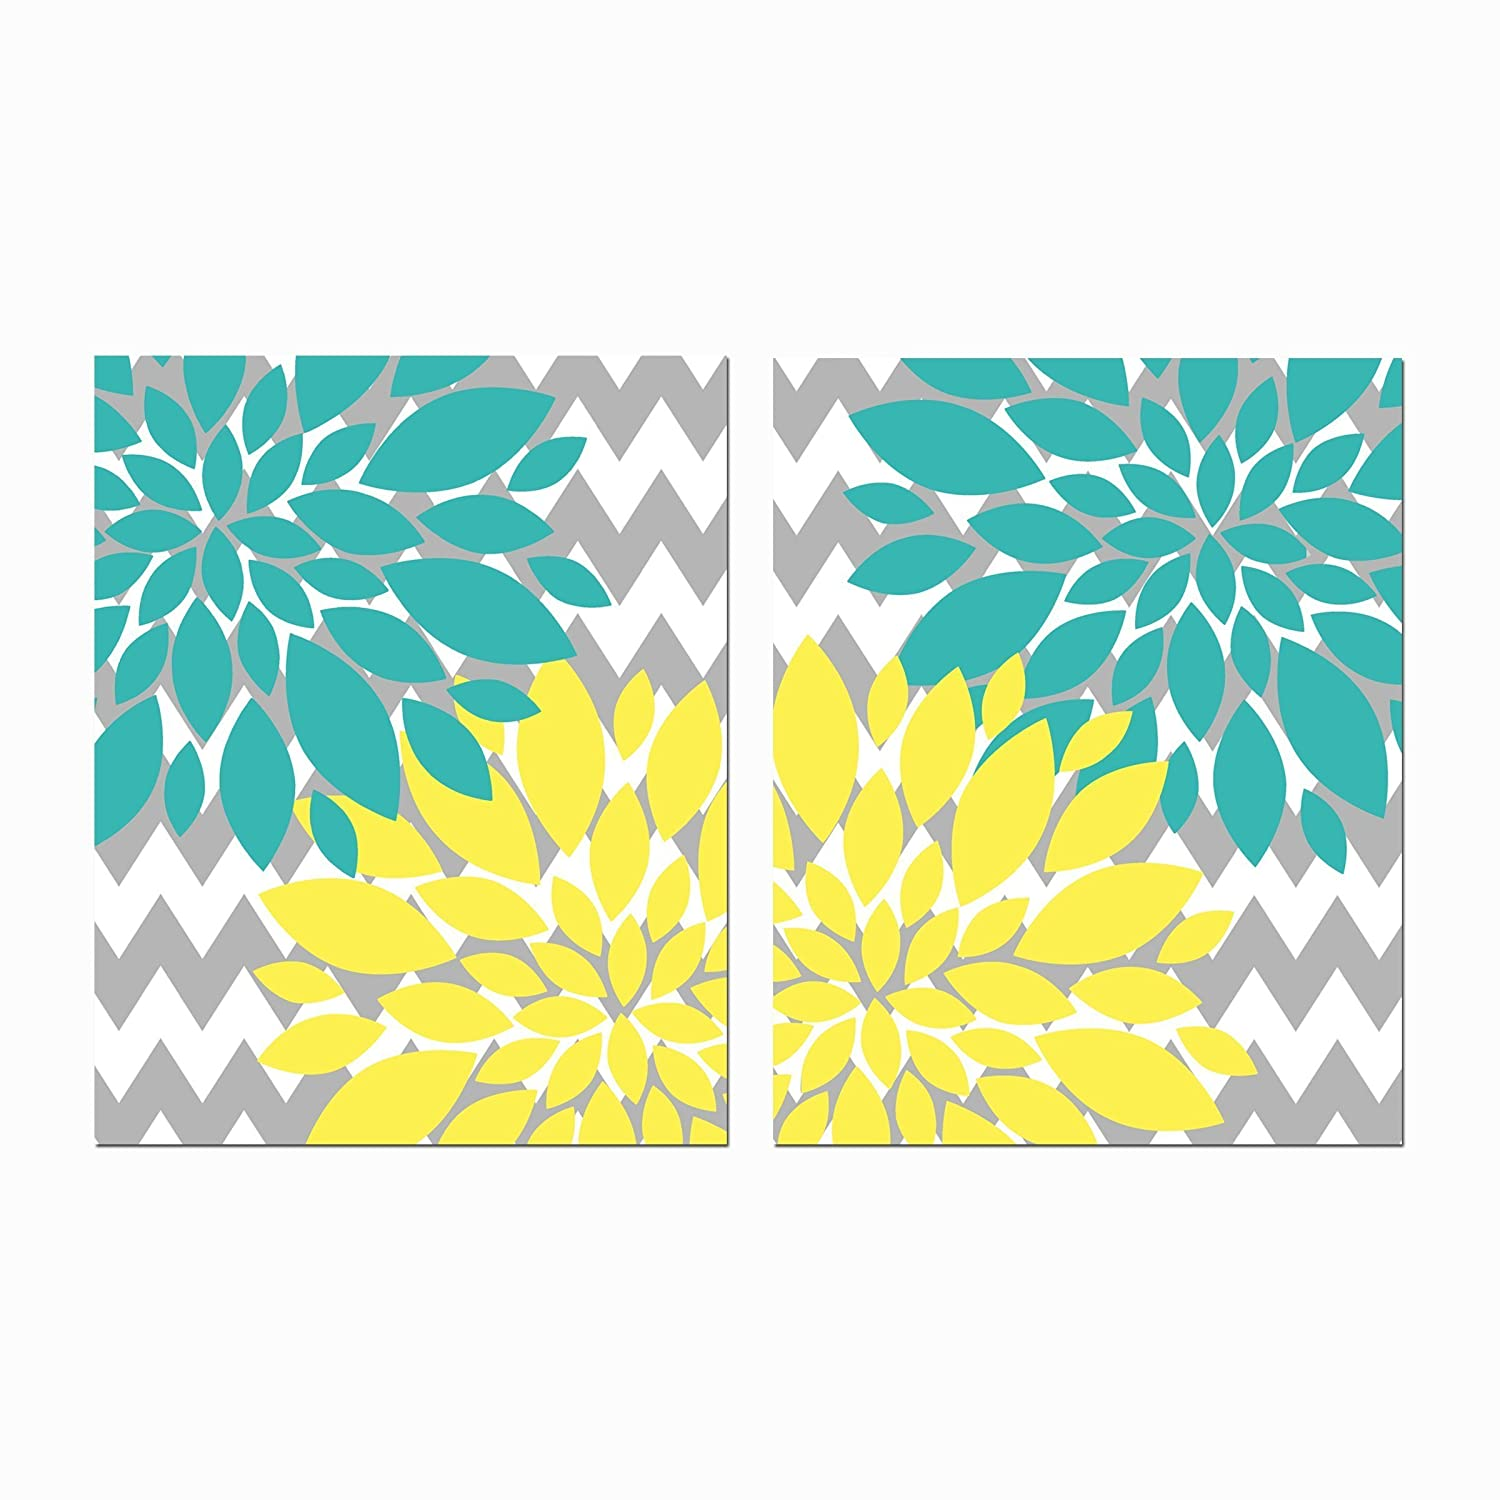 Amazon.com: Yellow and Turquoise with grey Chevron Floral Design ...